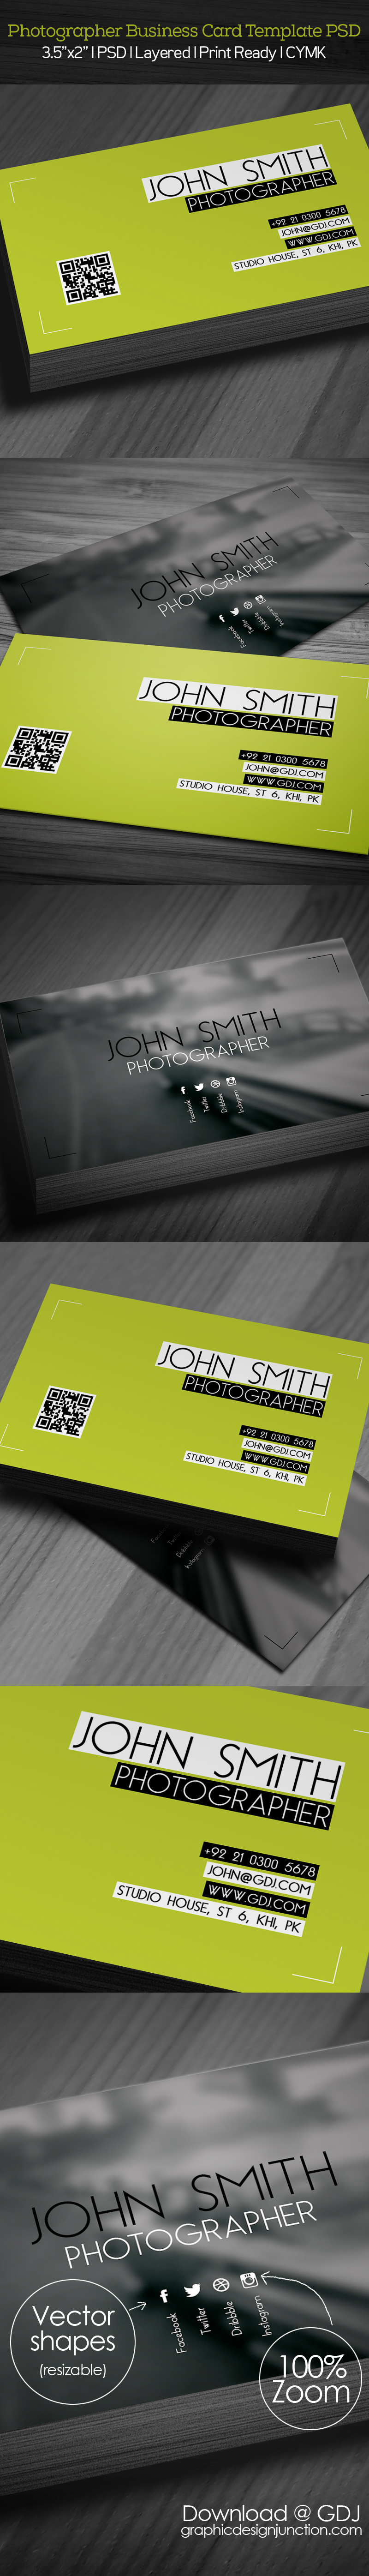 Free photographer business card psd template freebies graphic free photographer business card psd template large preview free photographer business card fbccfo Images